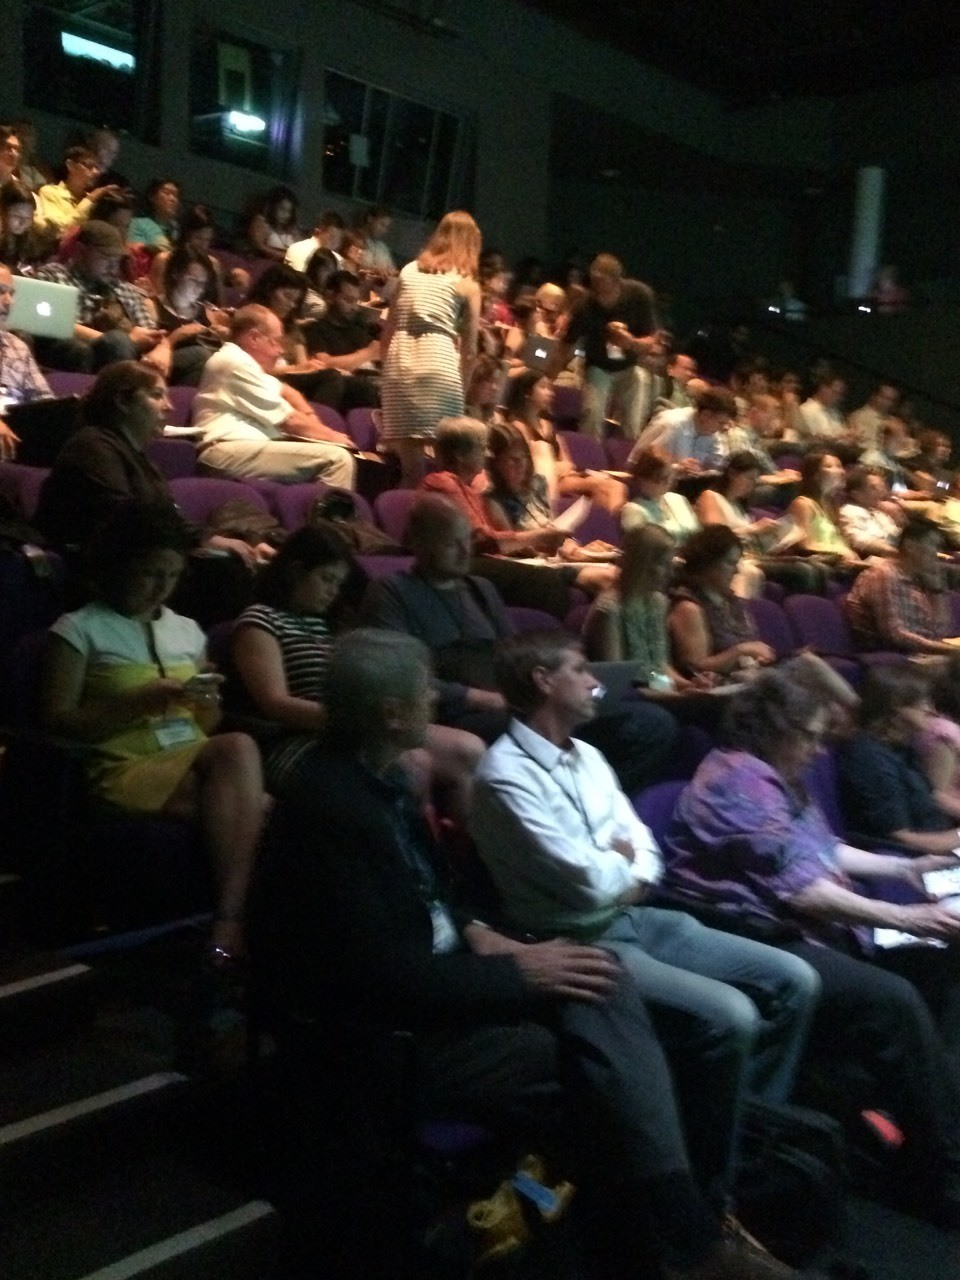 The audience getting settled